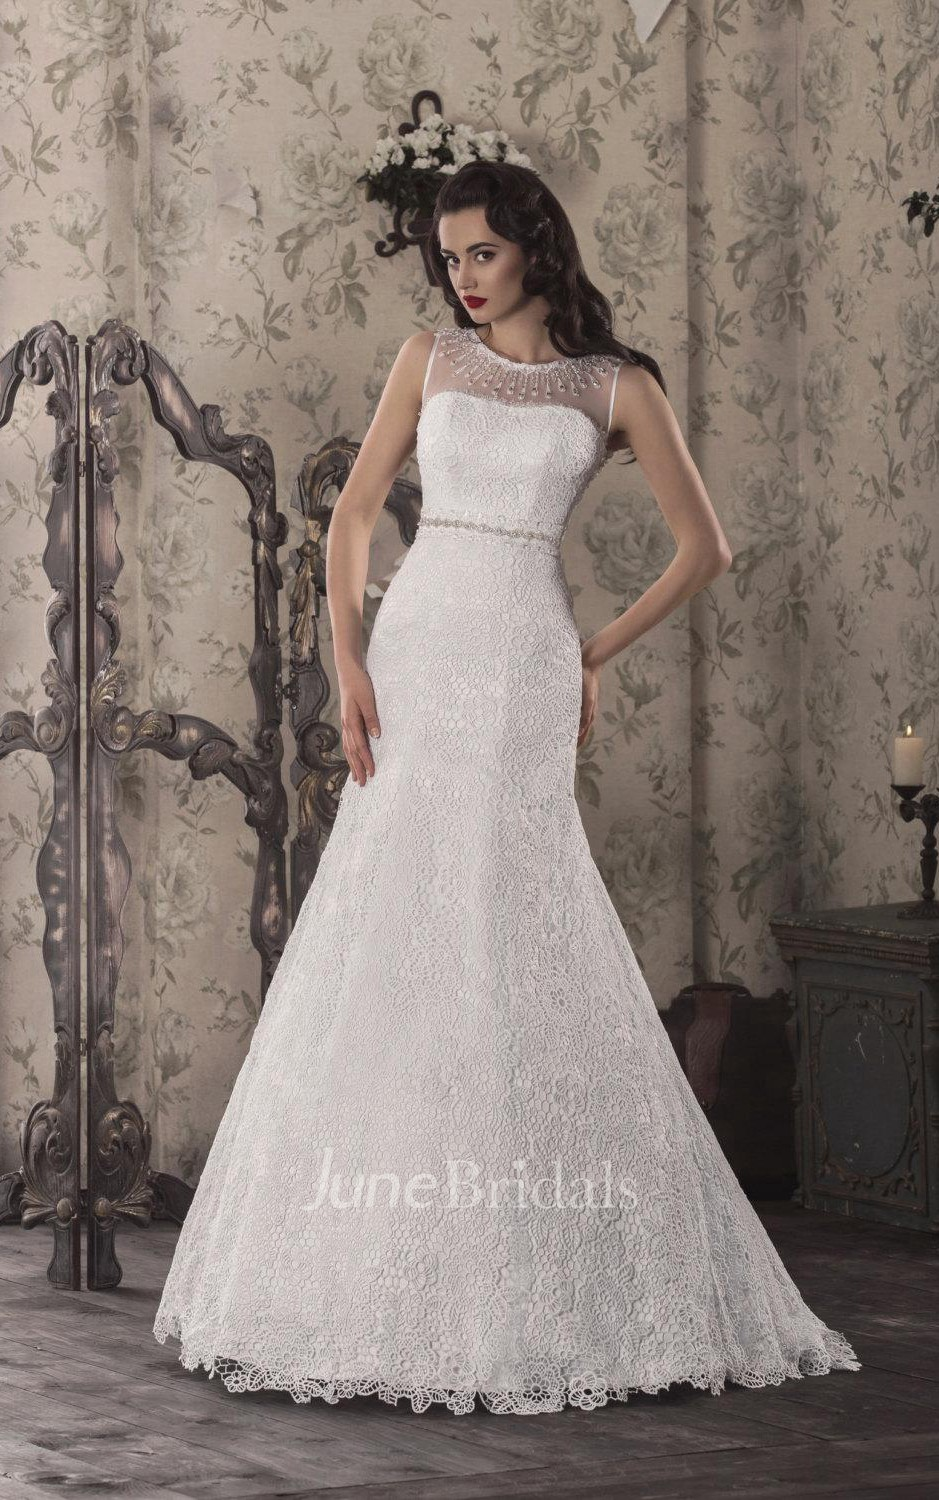 Trumpet Lace Weddig Dress With Illusion Lace Up Back